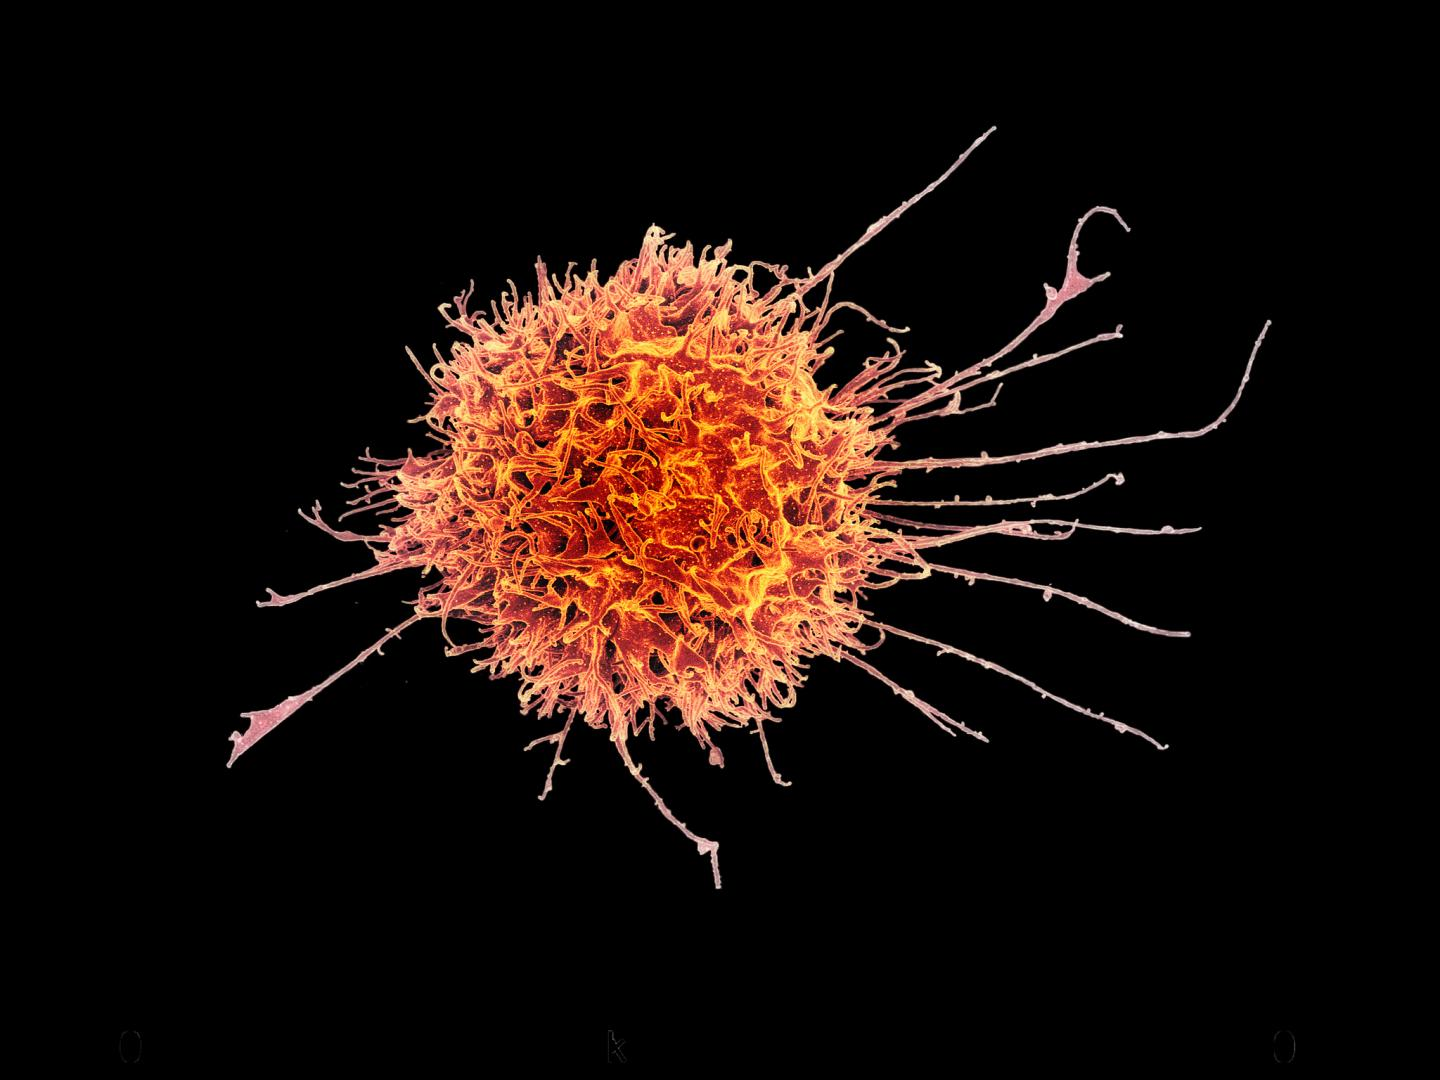 Scanning Electron Micrograph of a Human Natural Killer Cell, a Type of Immune Cell